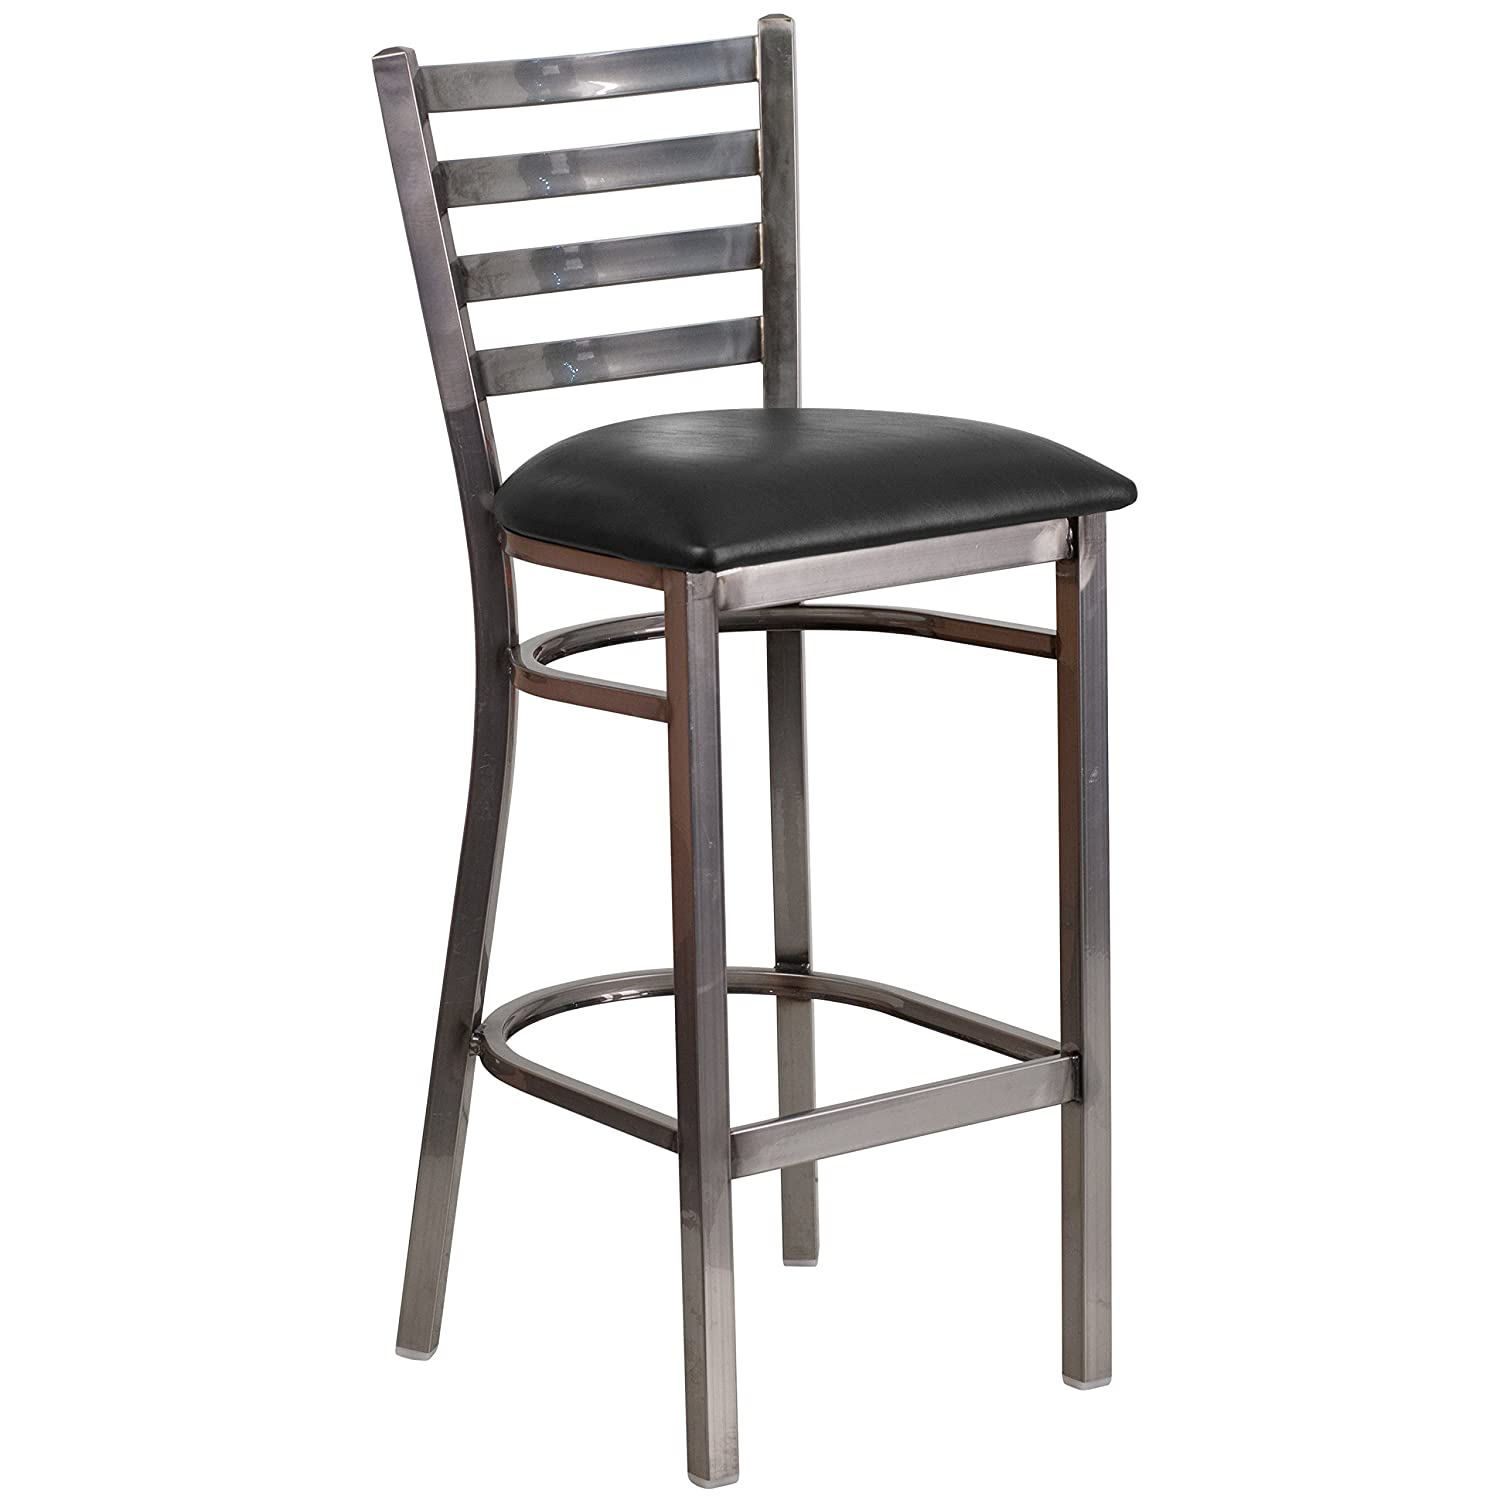 Flash Furniture 2 Pk. HERCULES Series Clear Coated Ladder Back Metal Restaurant Barstool – Black Vinyl Seat